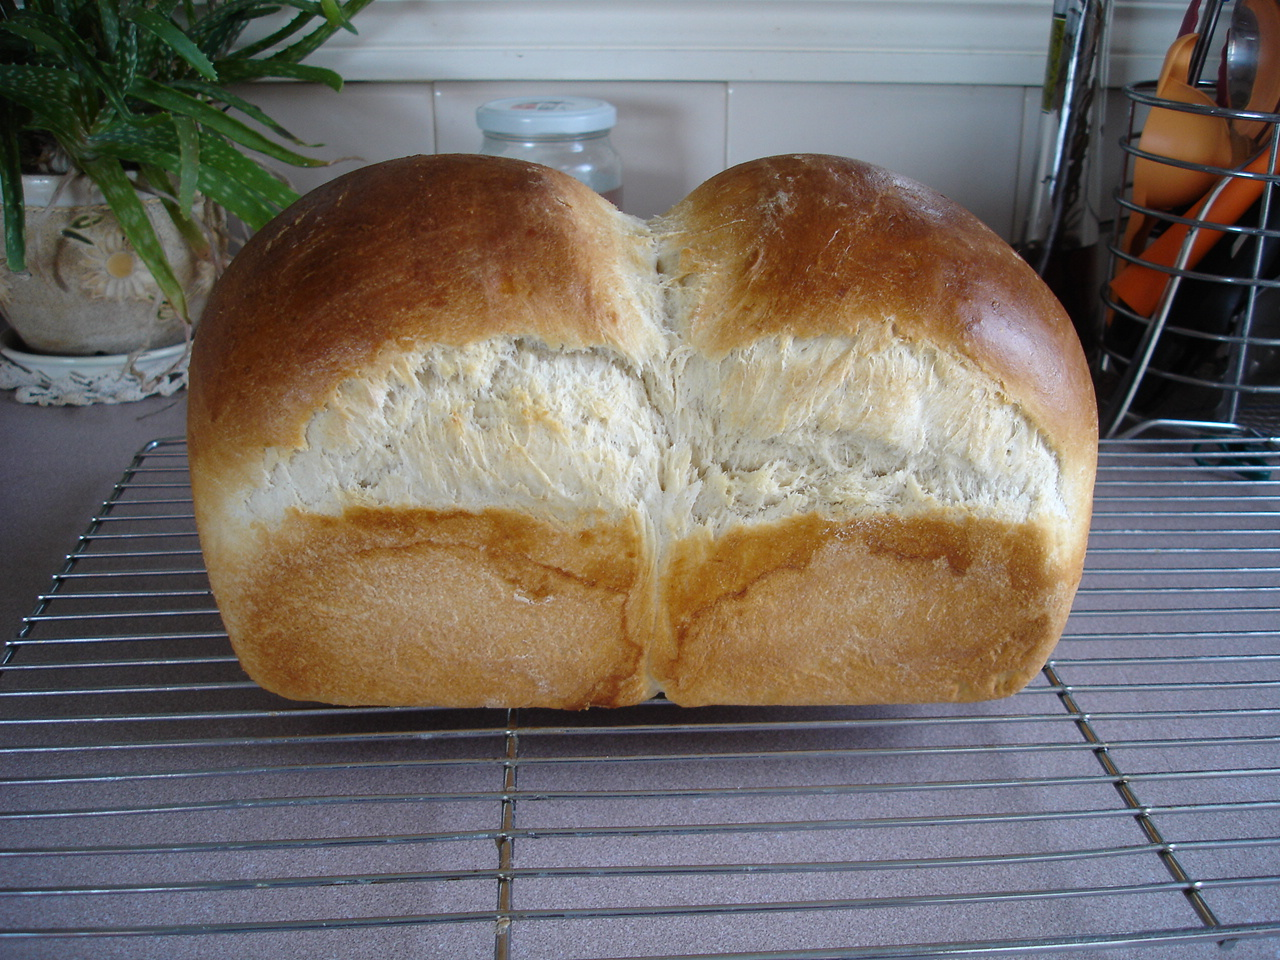 The average price of a gram (slightly over 1 pound) loaf of fresh white bread is somewhere between $ and $ in the United States, as of The average price ranges from $2 to $ in different locations in the United States.